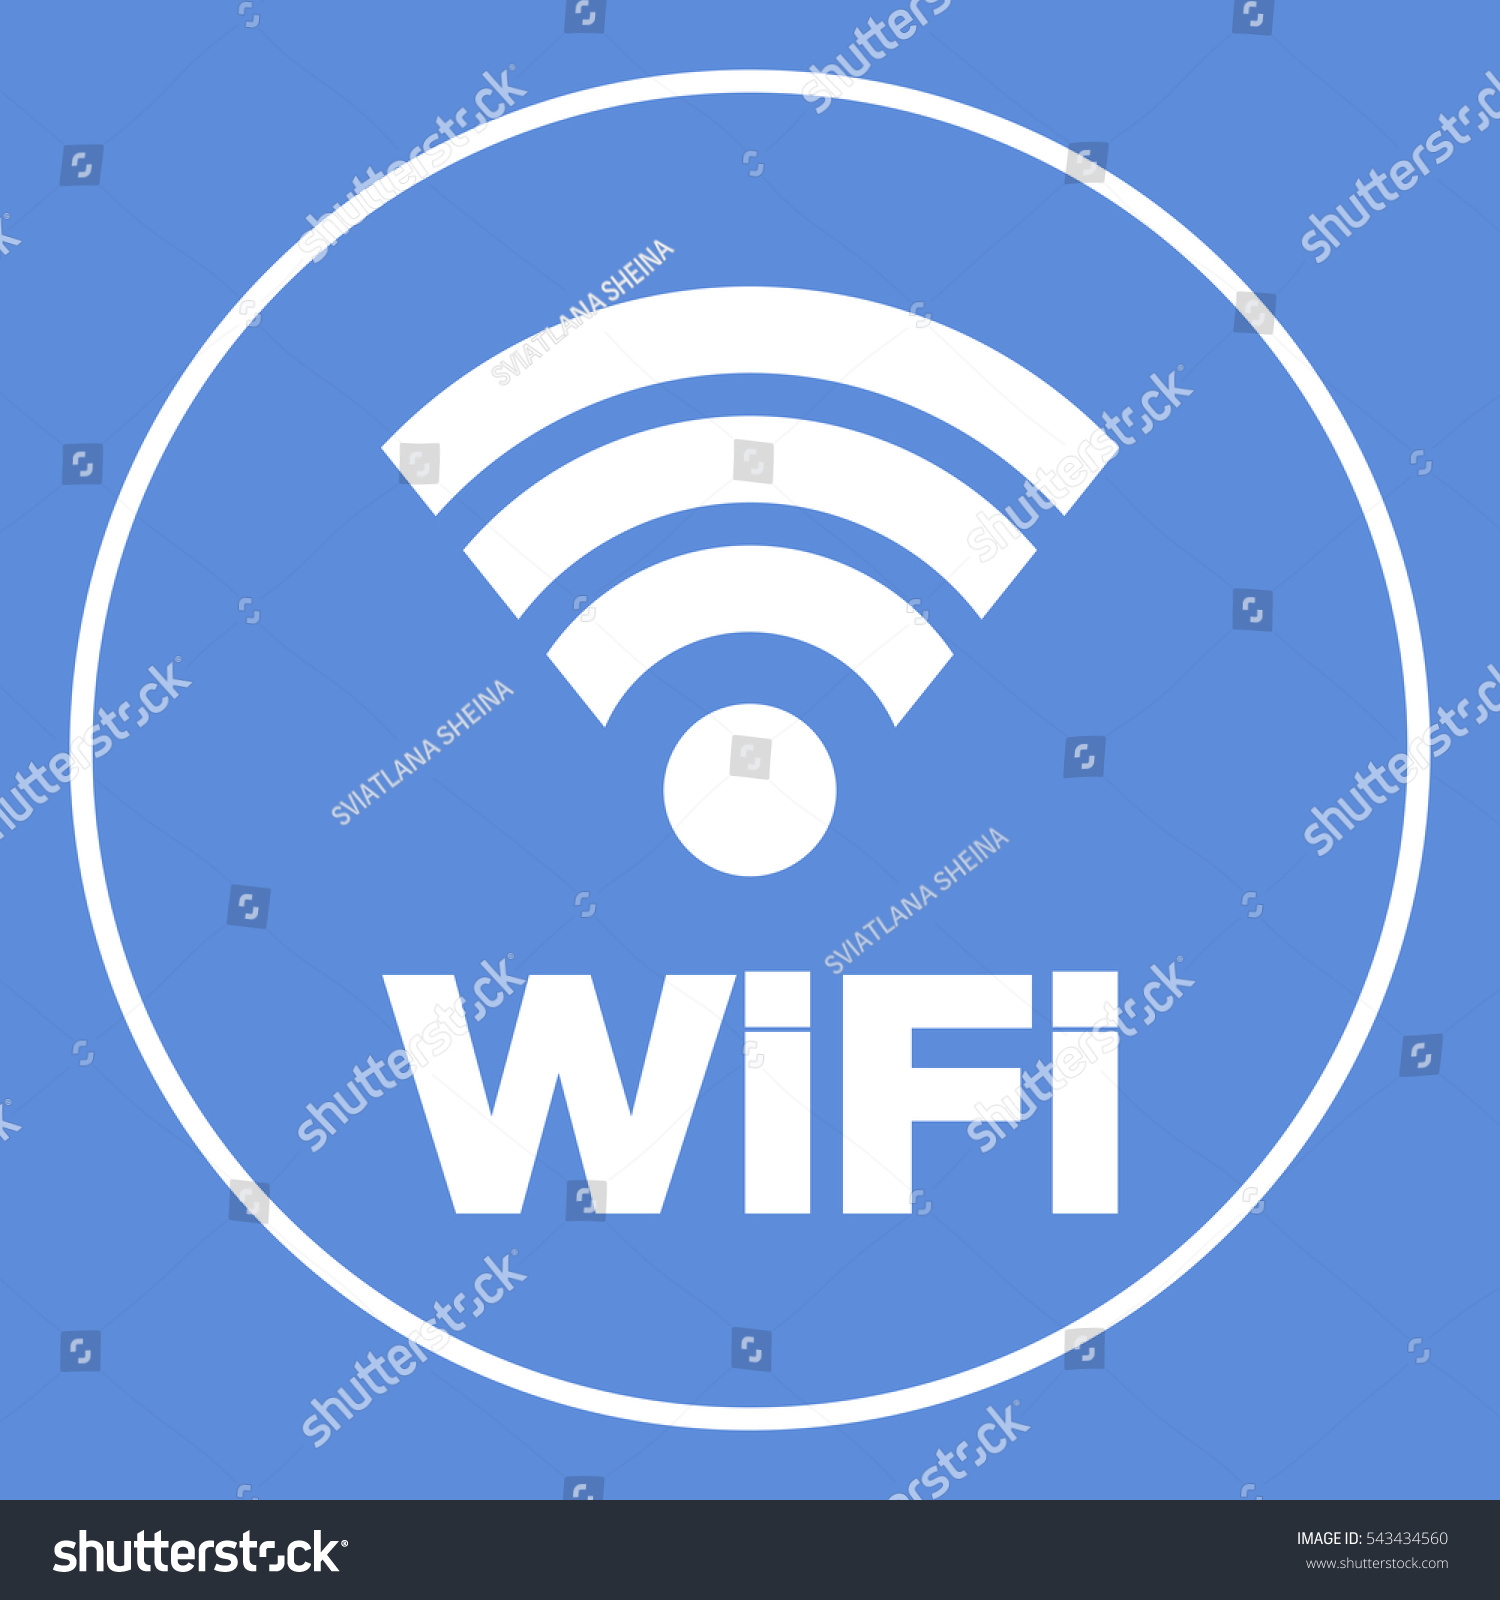 Internet connection symbol icon stock vector 543434560 shutterstock internet connection symbol icon buycottarizona Images